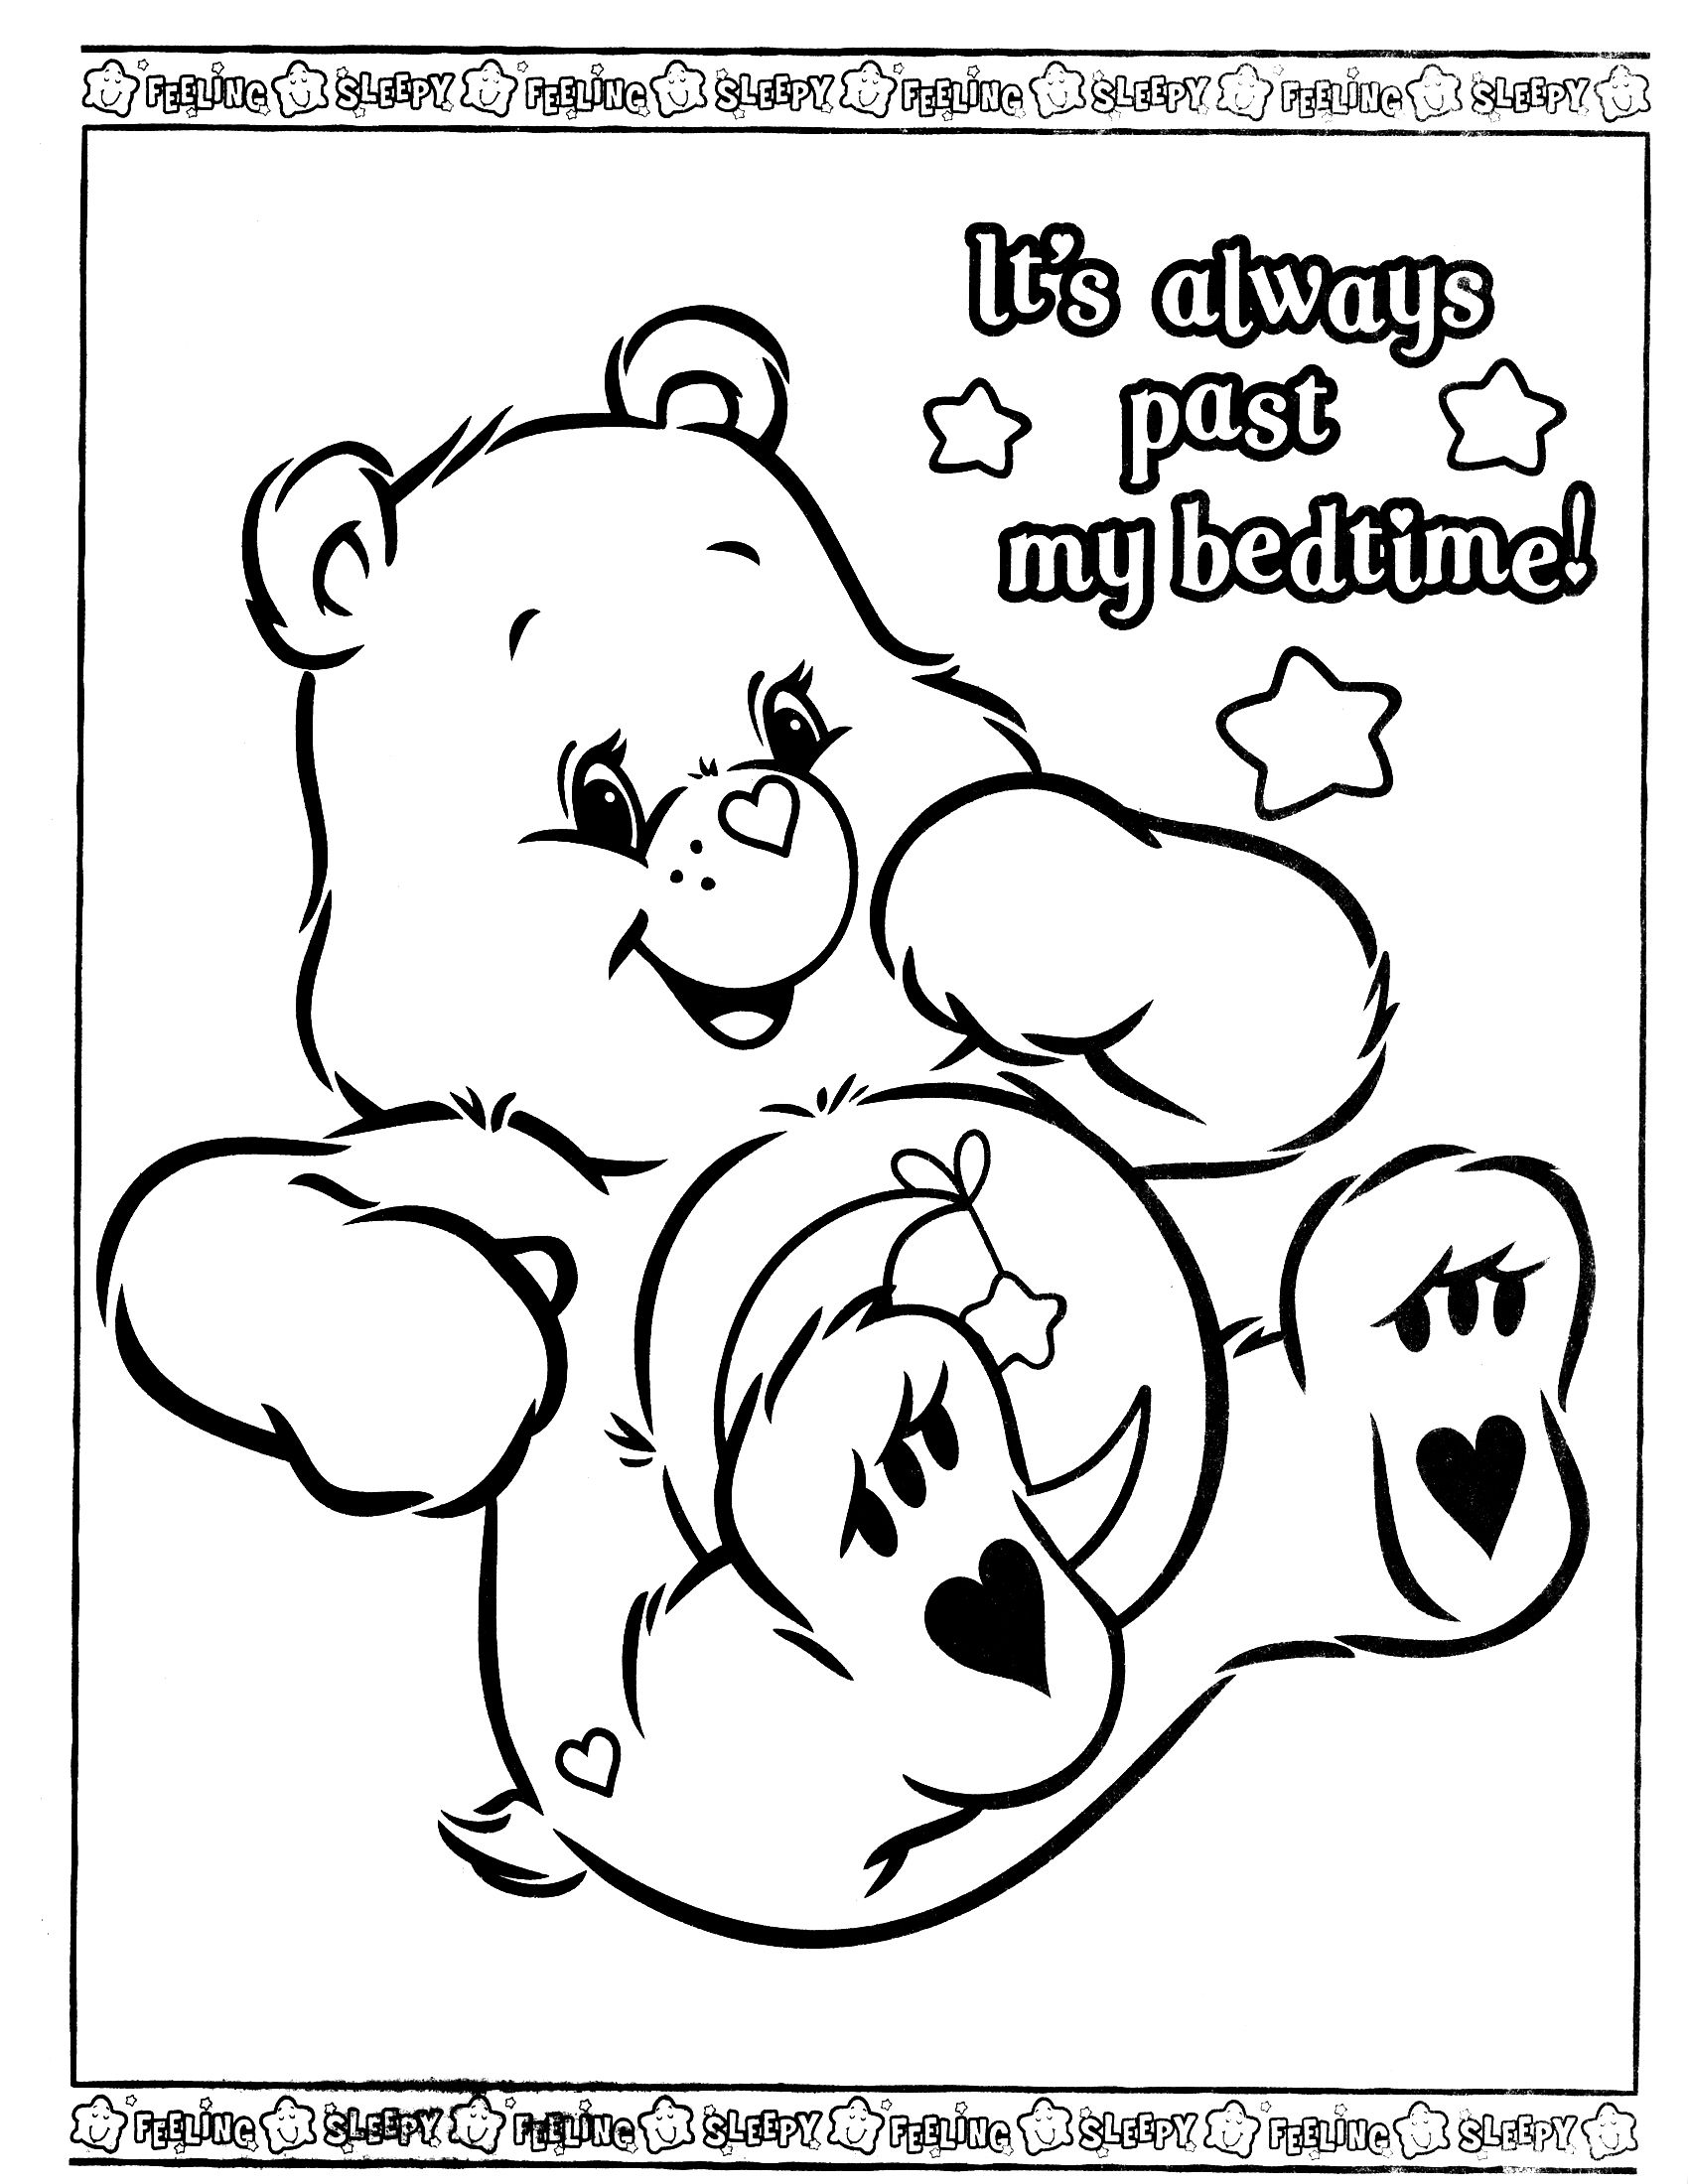 Care Bears Coloring Page Bear Coloring Pages Coloring Books Cute Coloring Pages